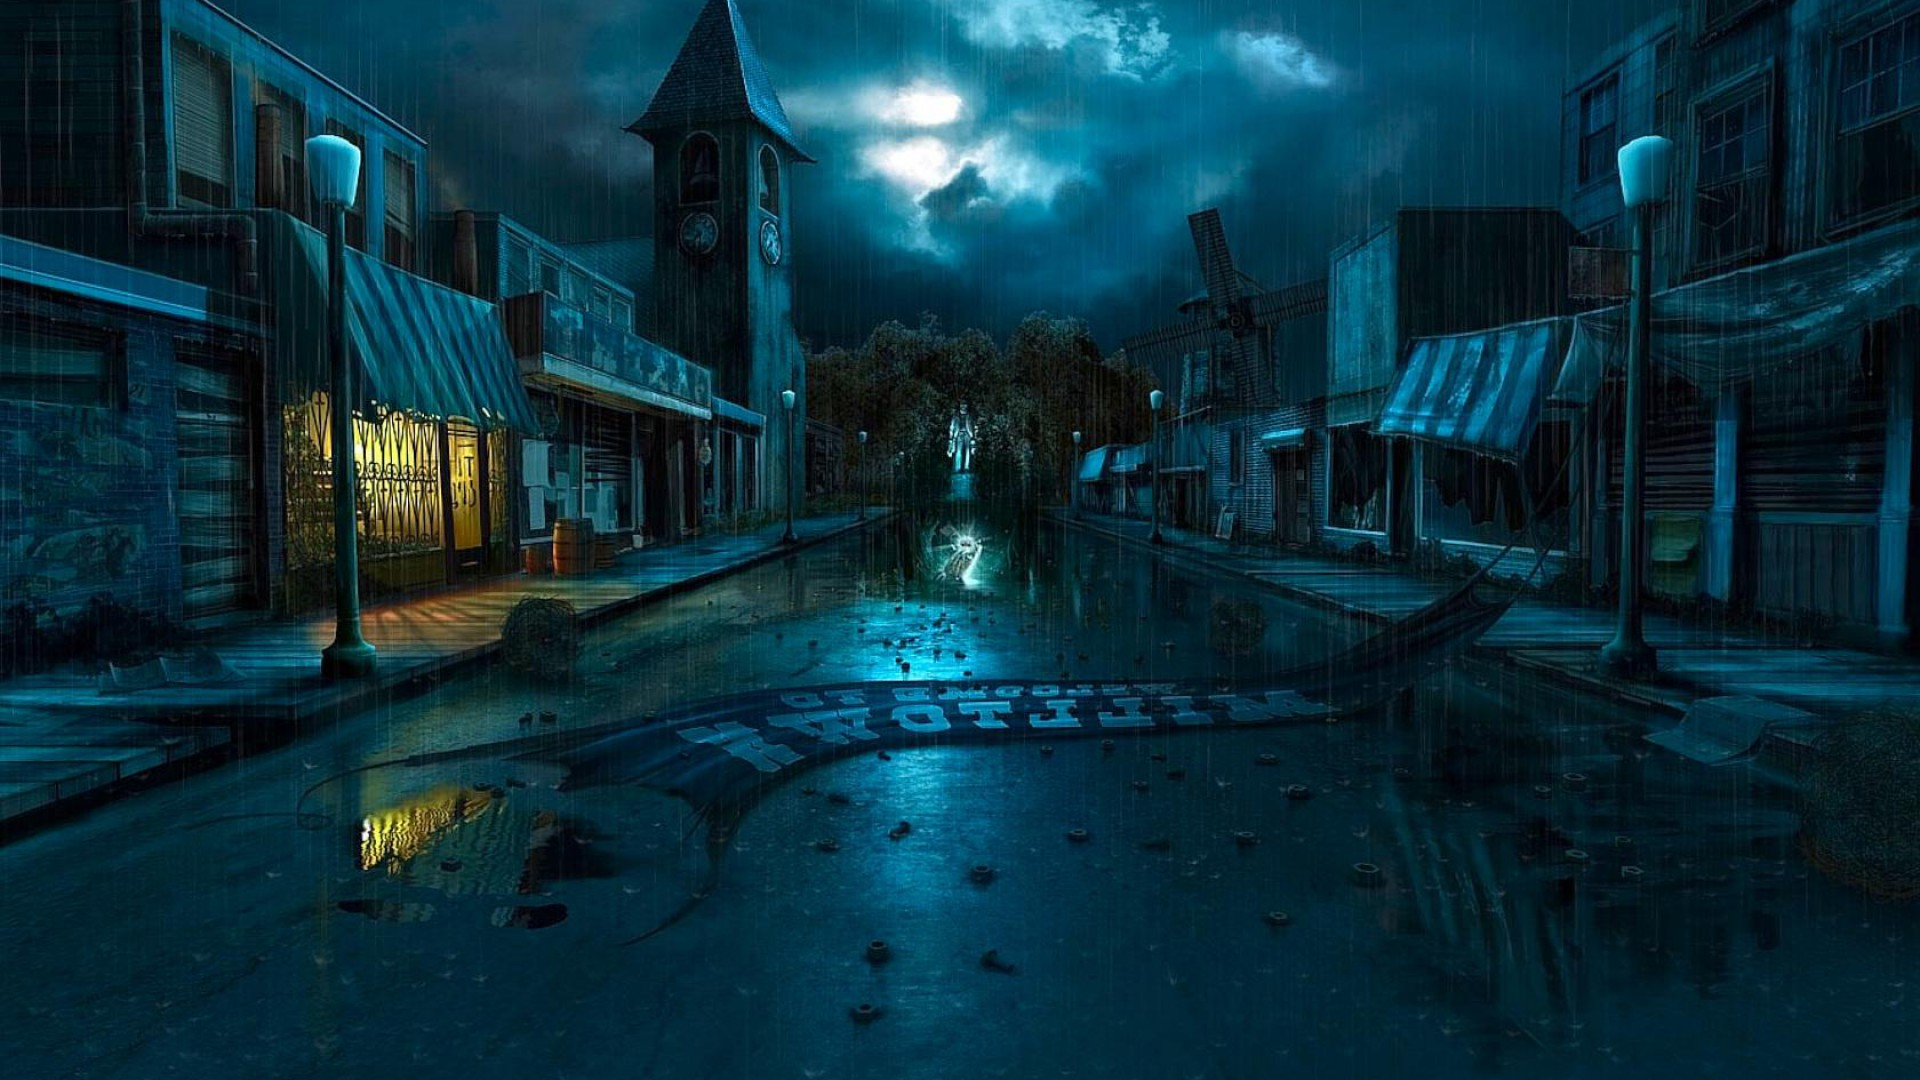 abandoned city at night full hd wallpaper and background image